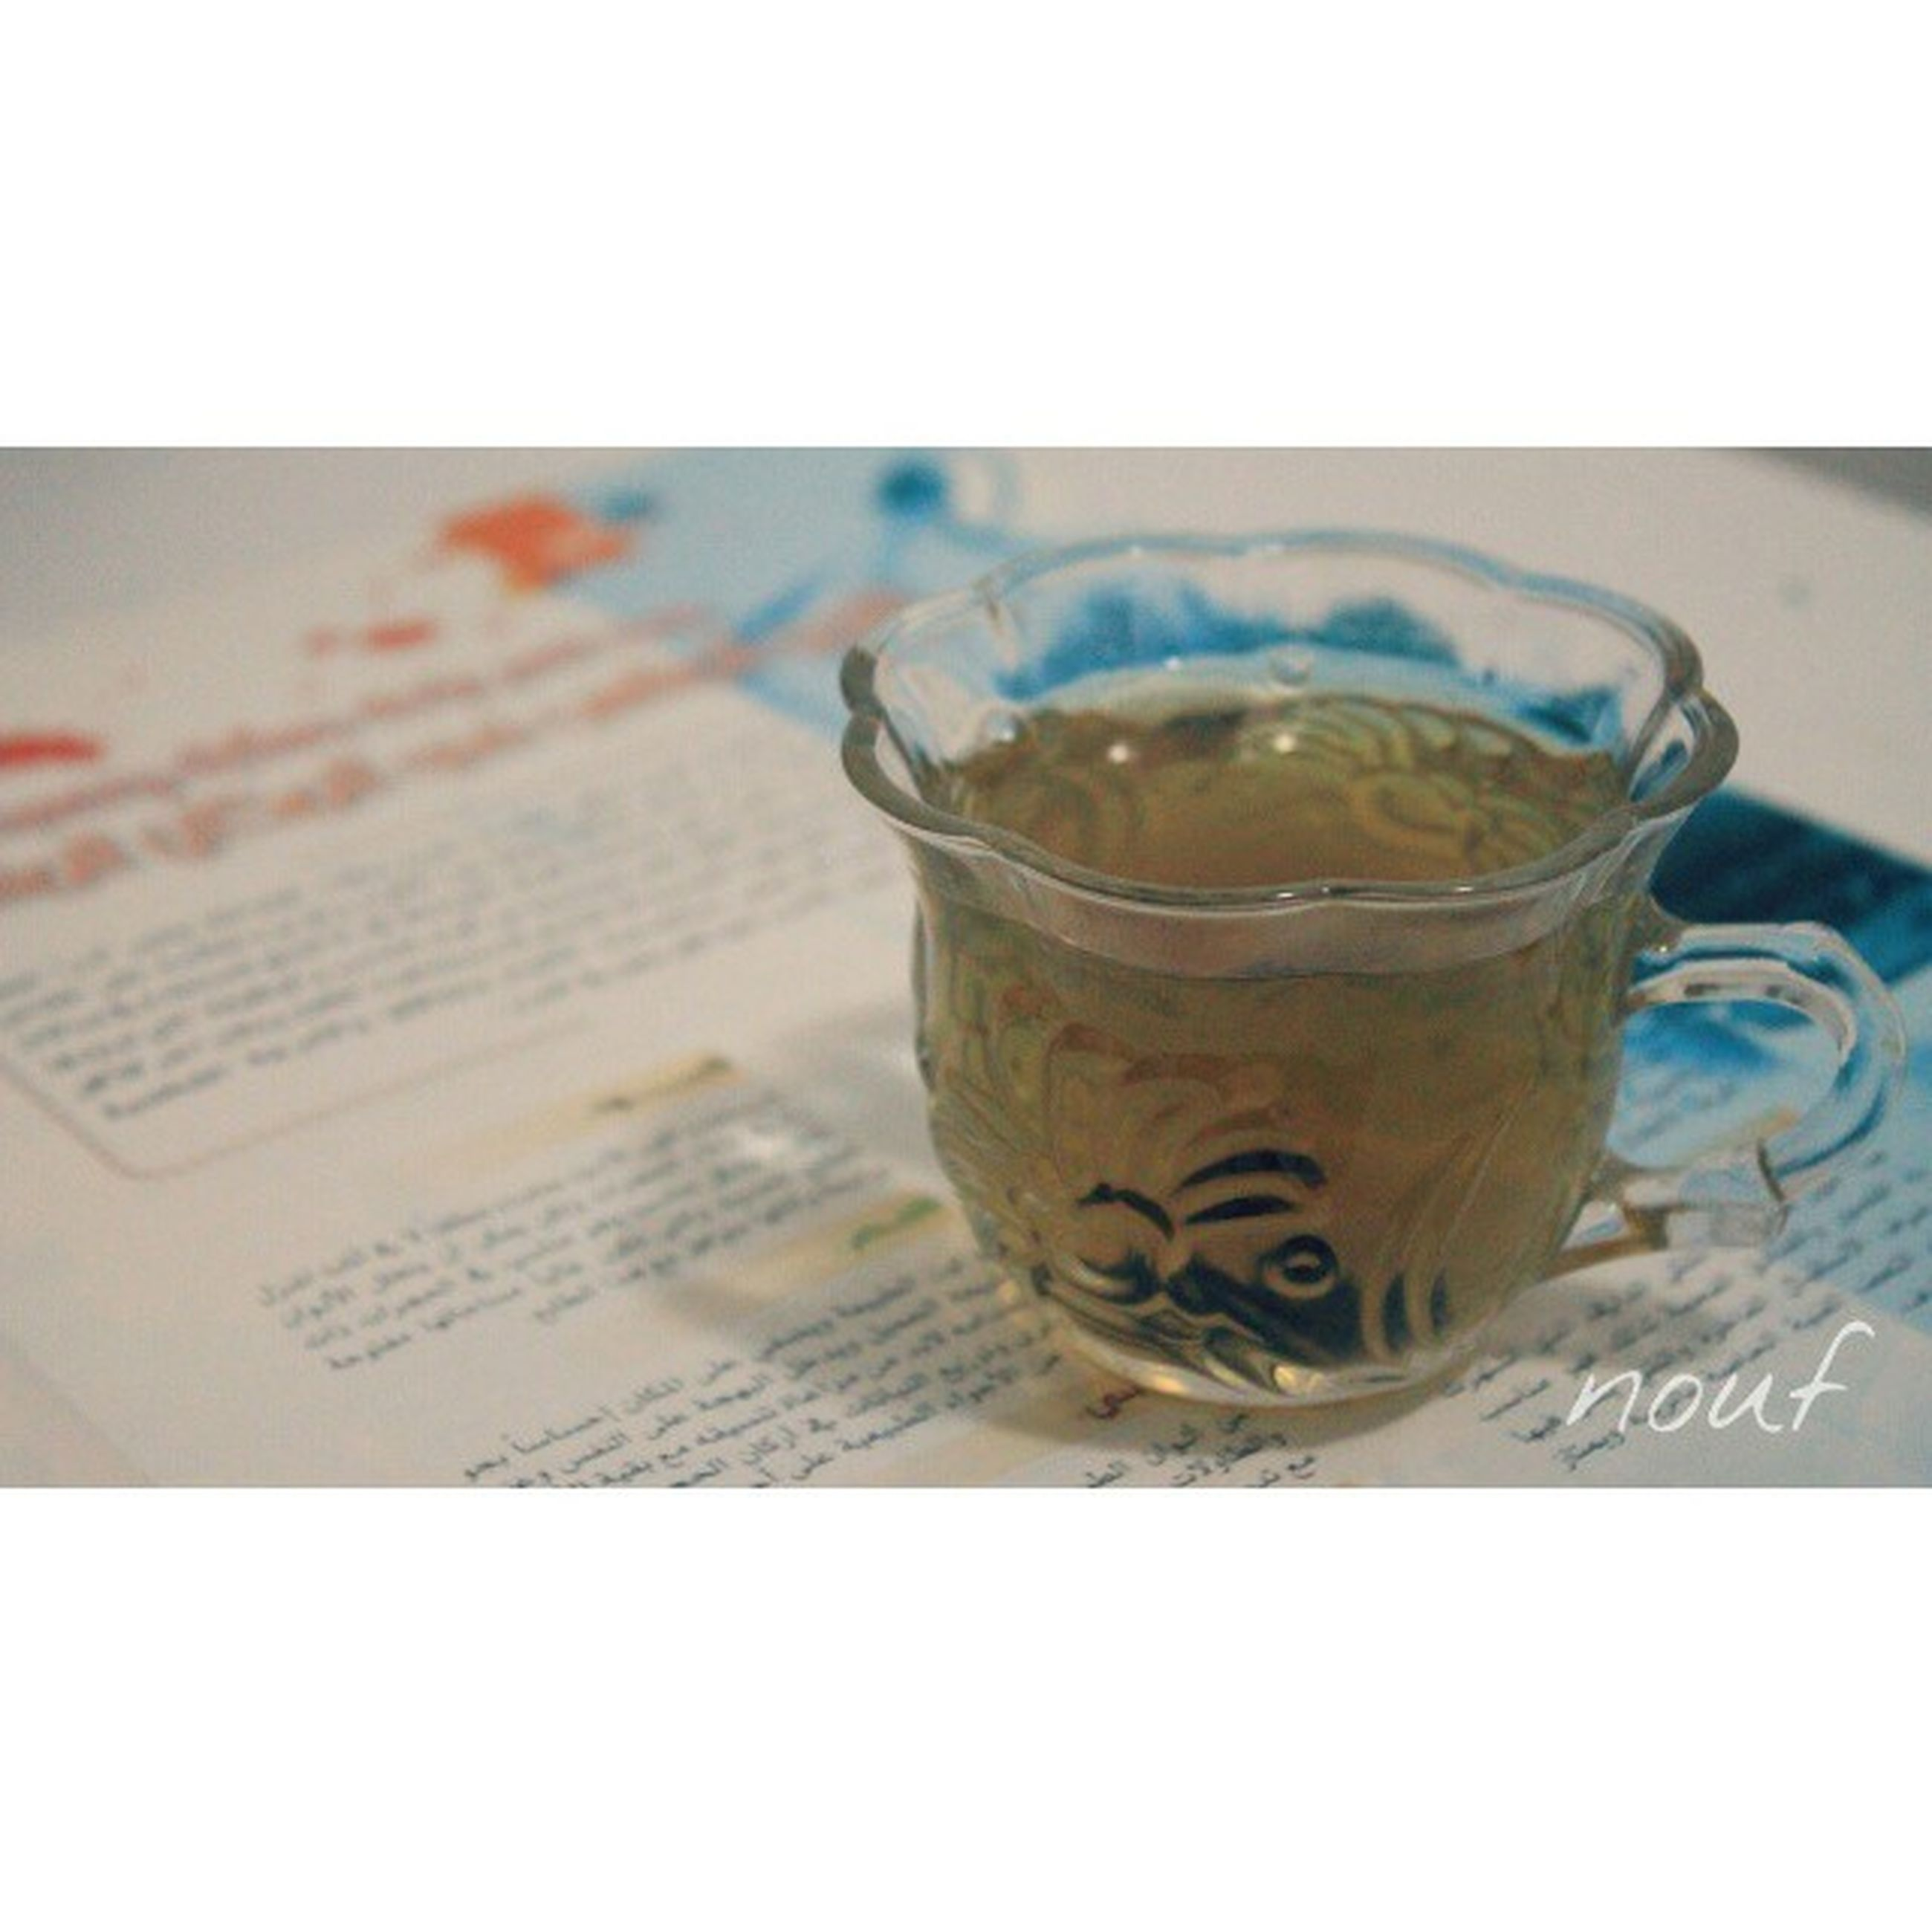 drink, indoors, food and drink, refreshment, table, transfer print, still life, drinking glass, close-up, auto post production filter, freshness, glass - material, text, coffee cup, transparent, glass, alcohol, coffee - drink, western script, no people